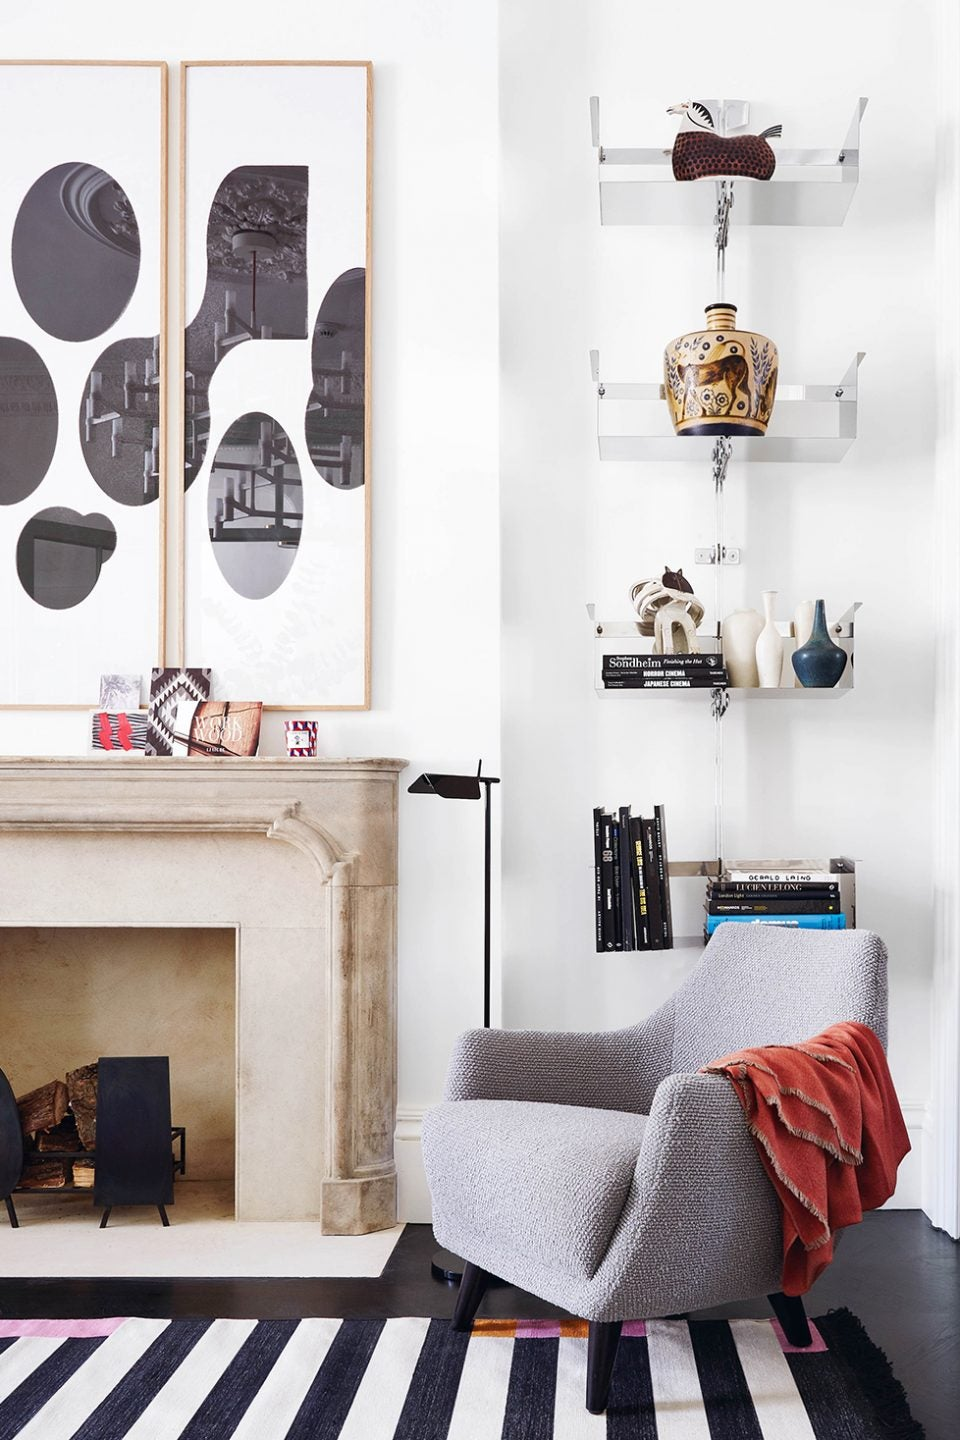 London-Based Suzy Hoodless Packs Her Spaces with Whimsy